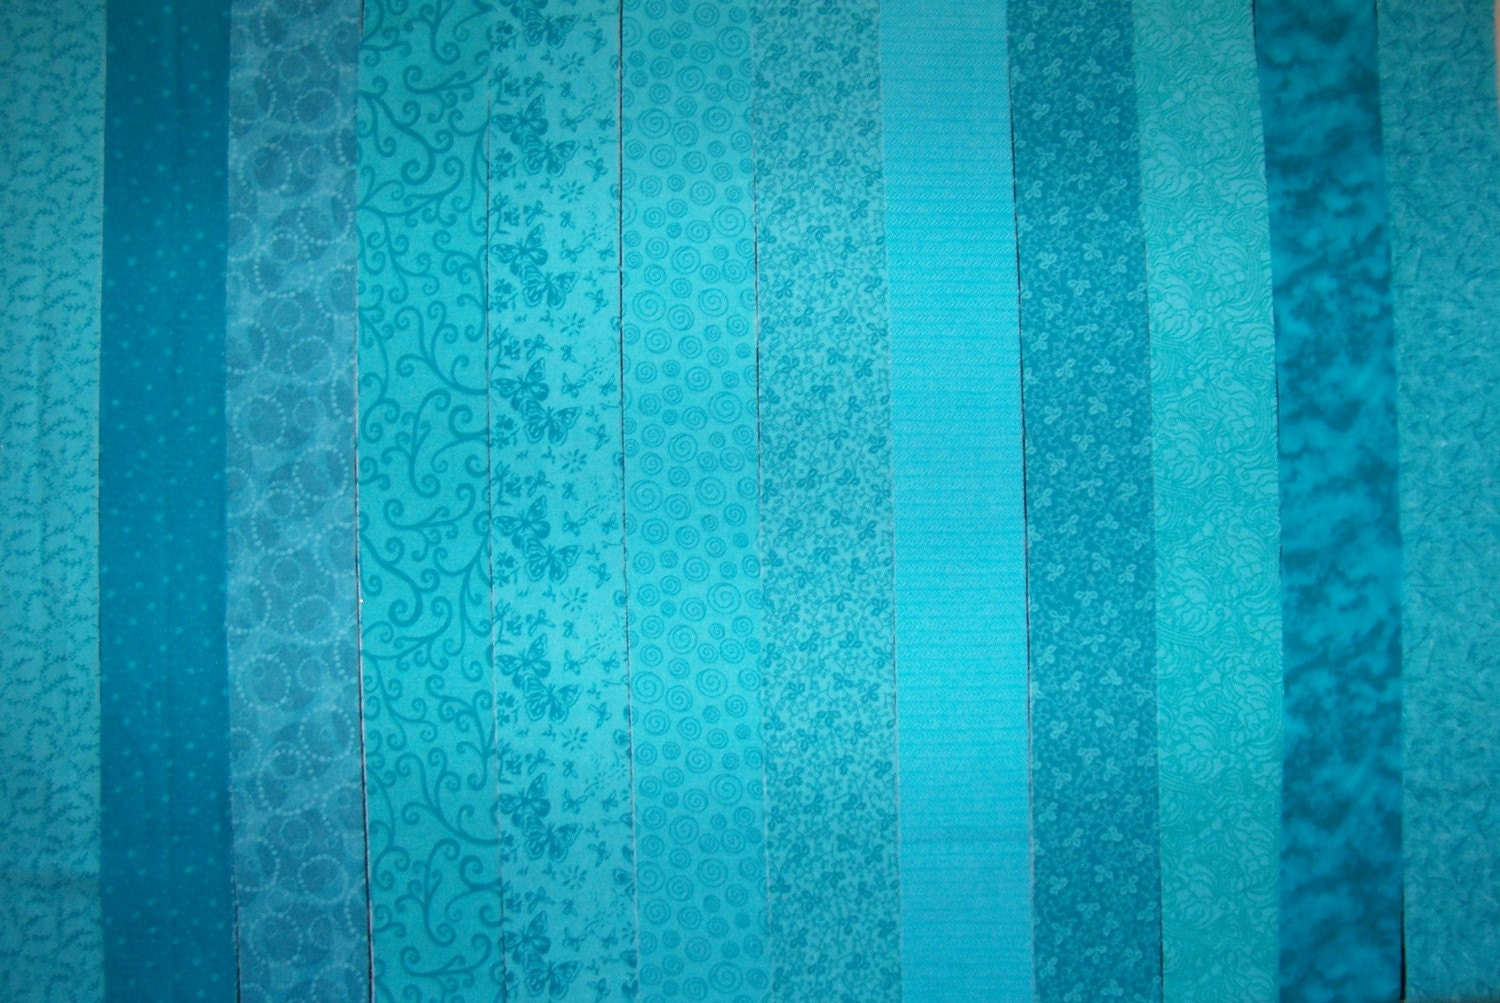 Teal Turquoise Quilt Jelly Roll Fabric Strips C 72